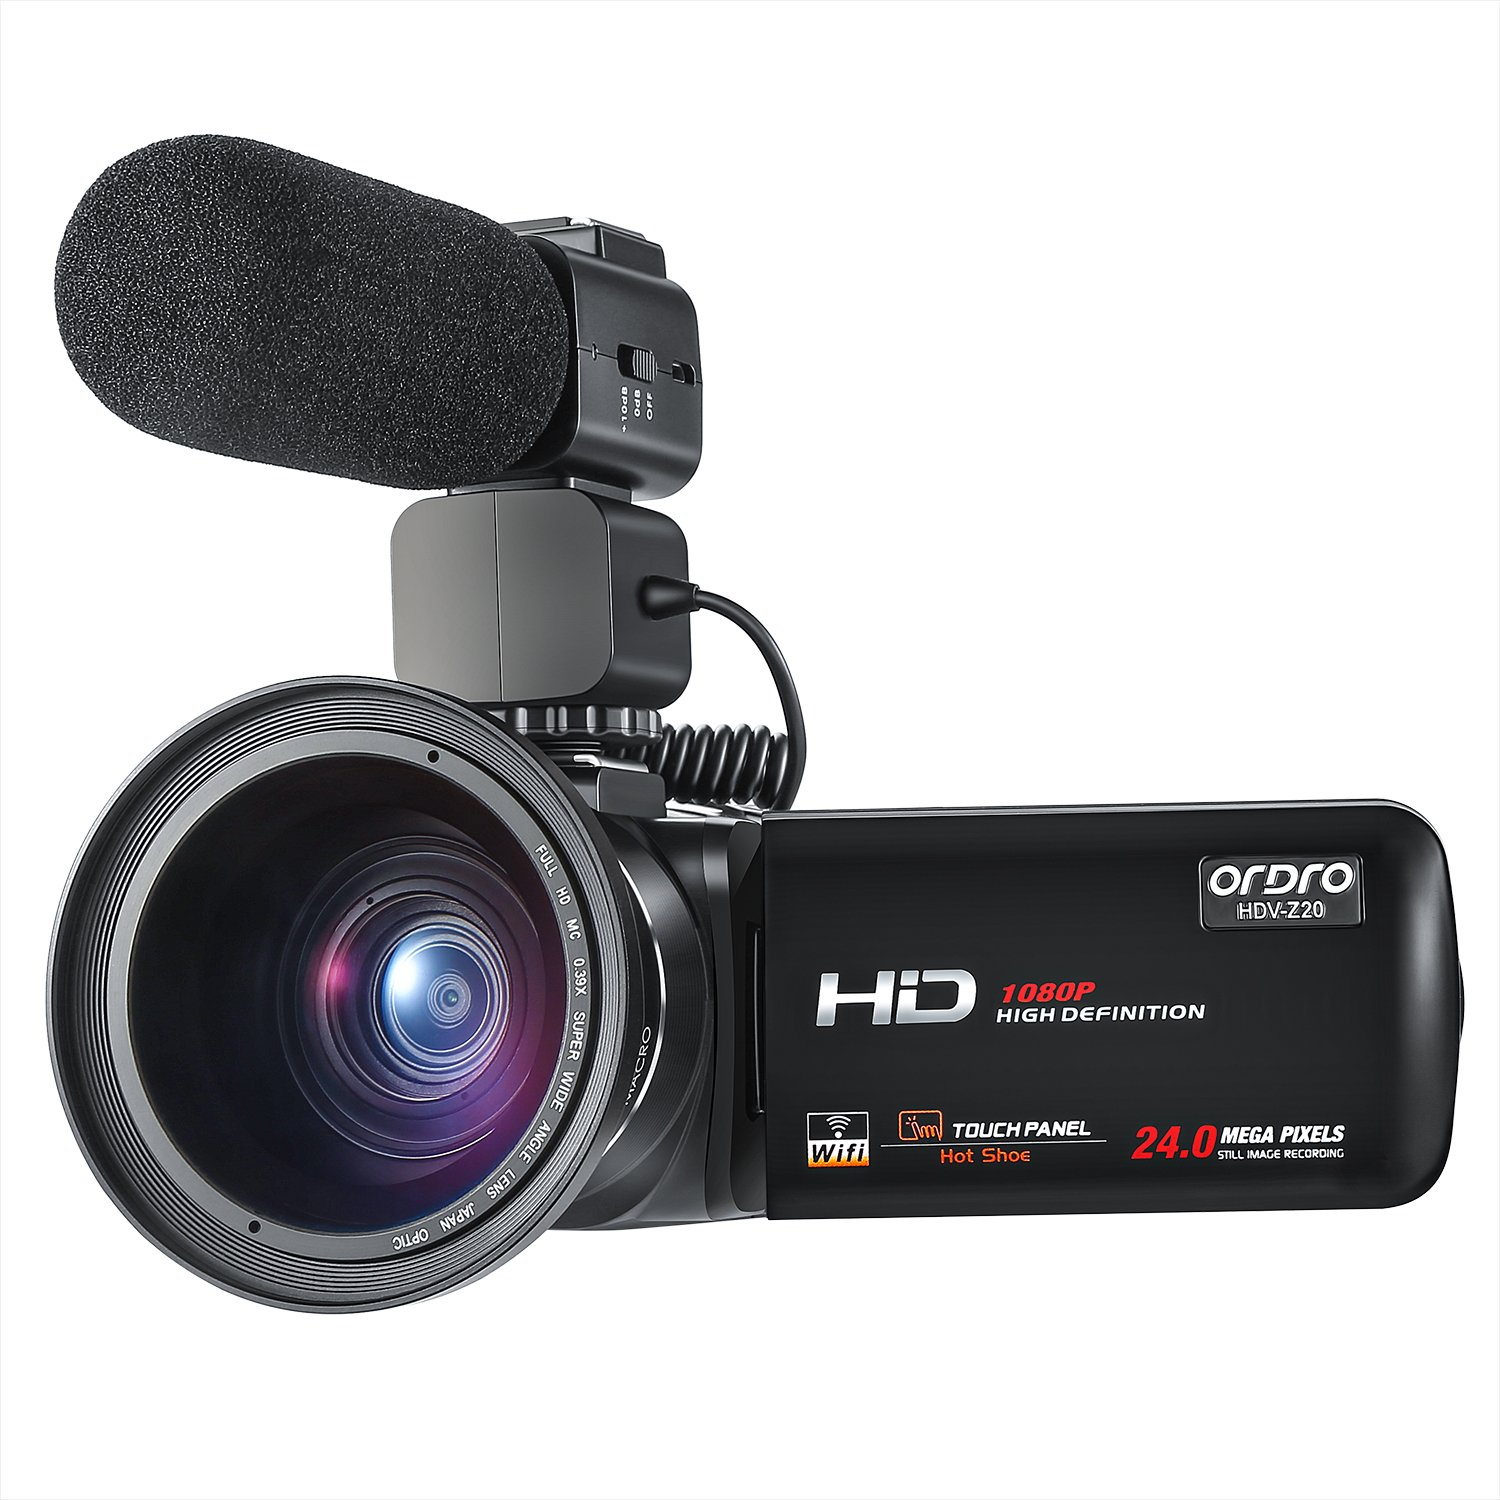 ORDRO Camcorder 1080P Full HD Video Camera with Wifi External Microphone Wide Angle Lens (HDV-Z20) by ORDRO